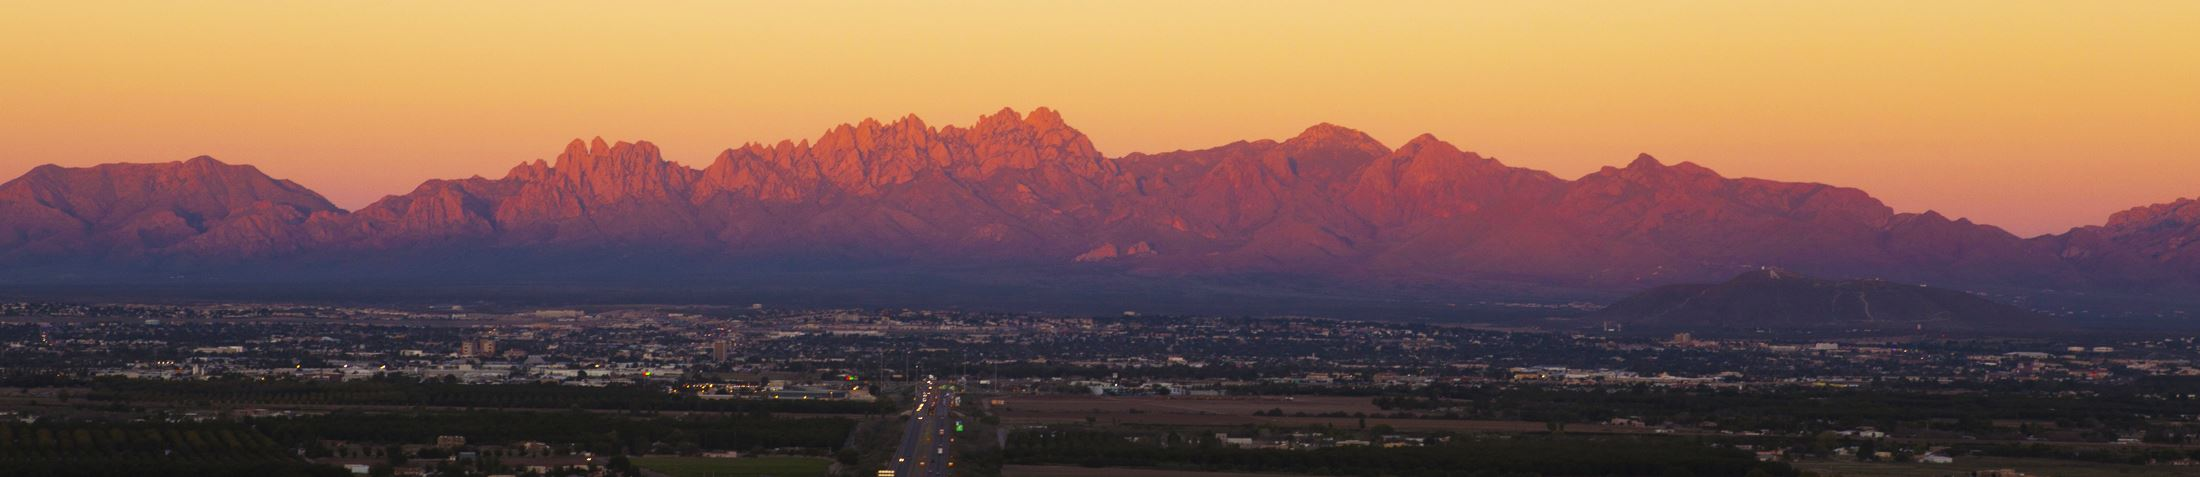 Organ Mountains during Sunset